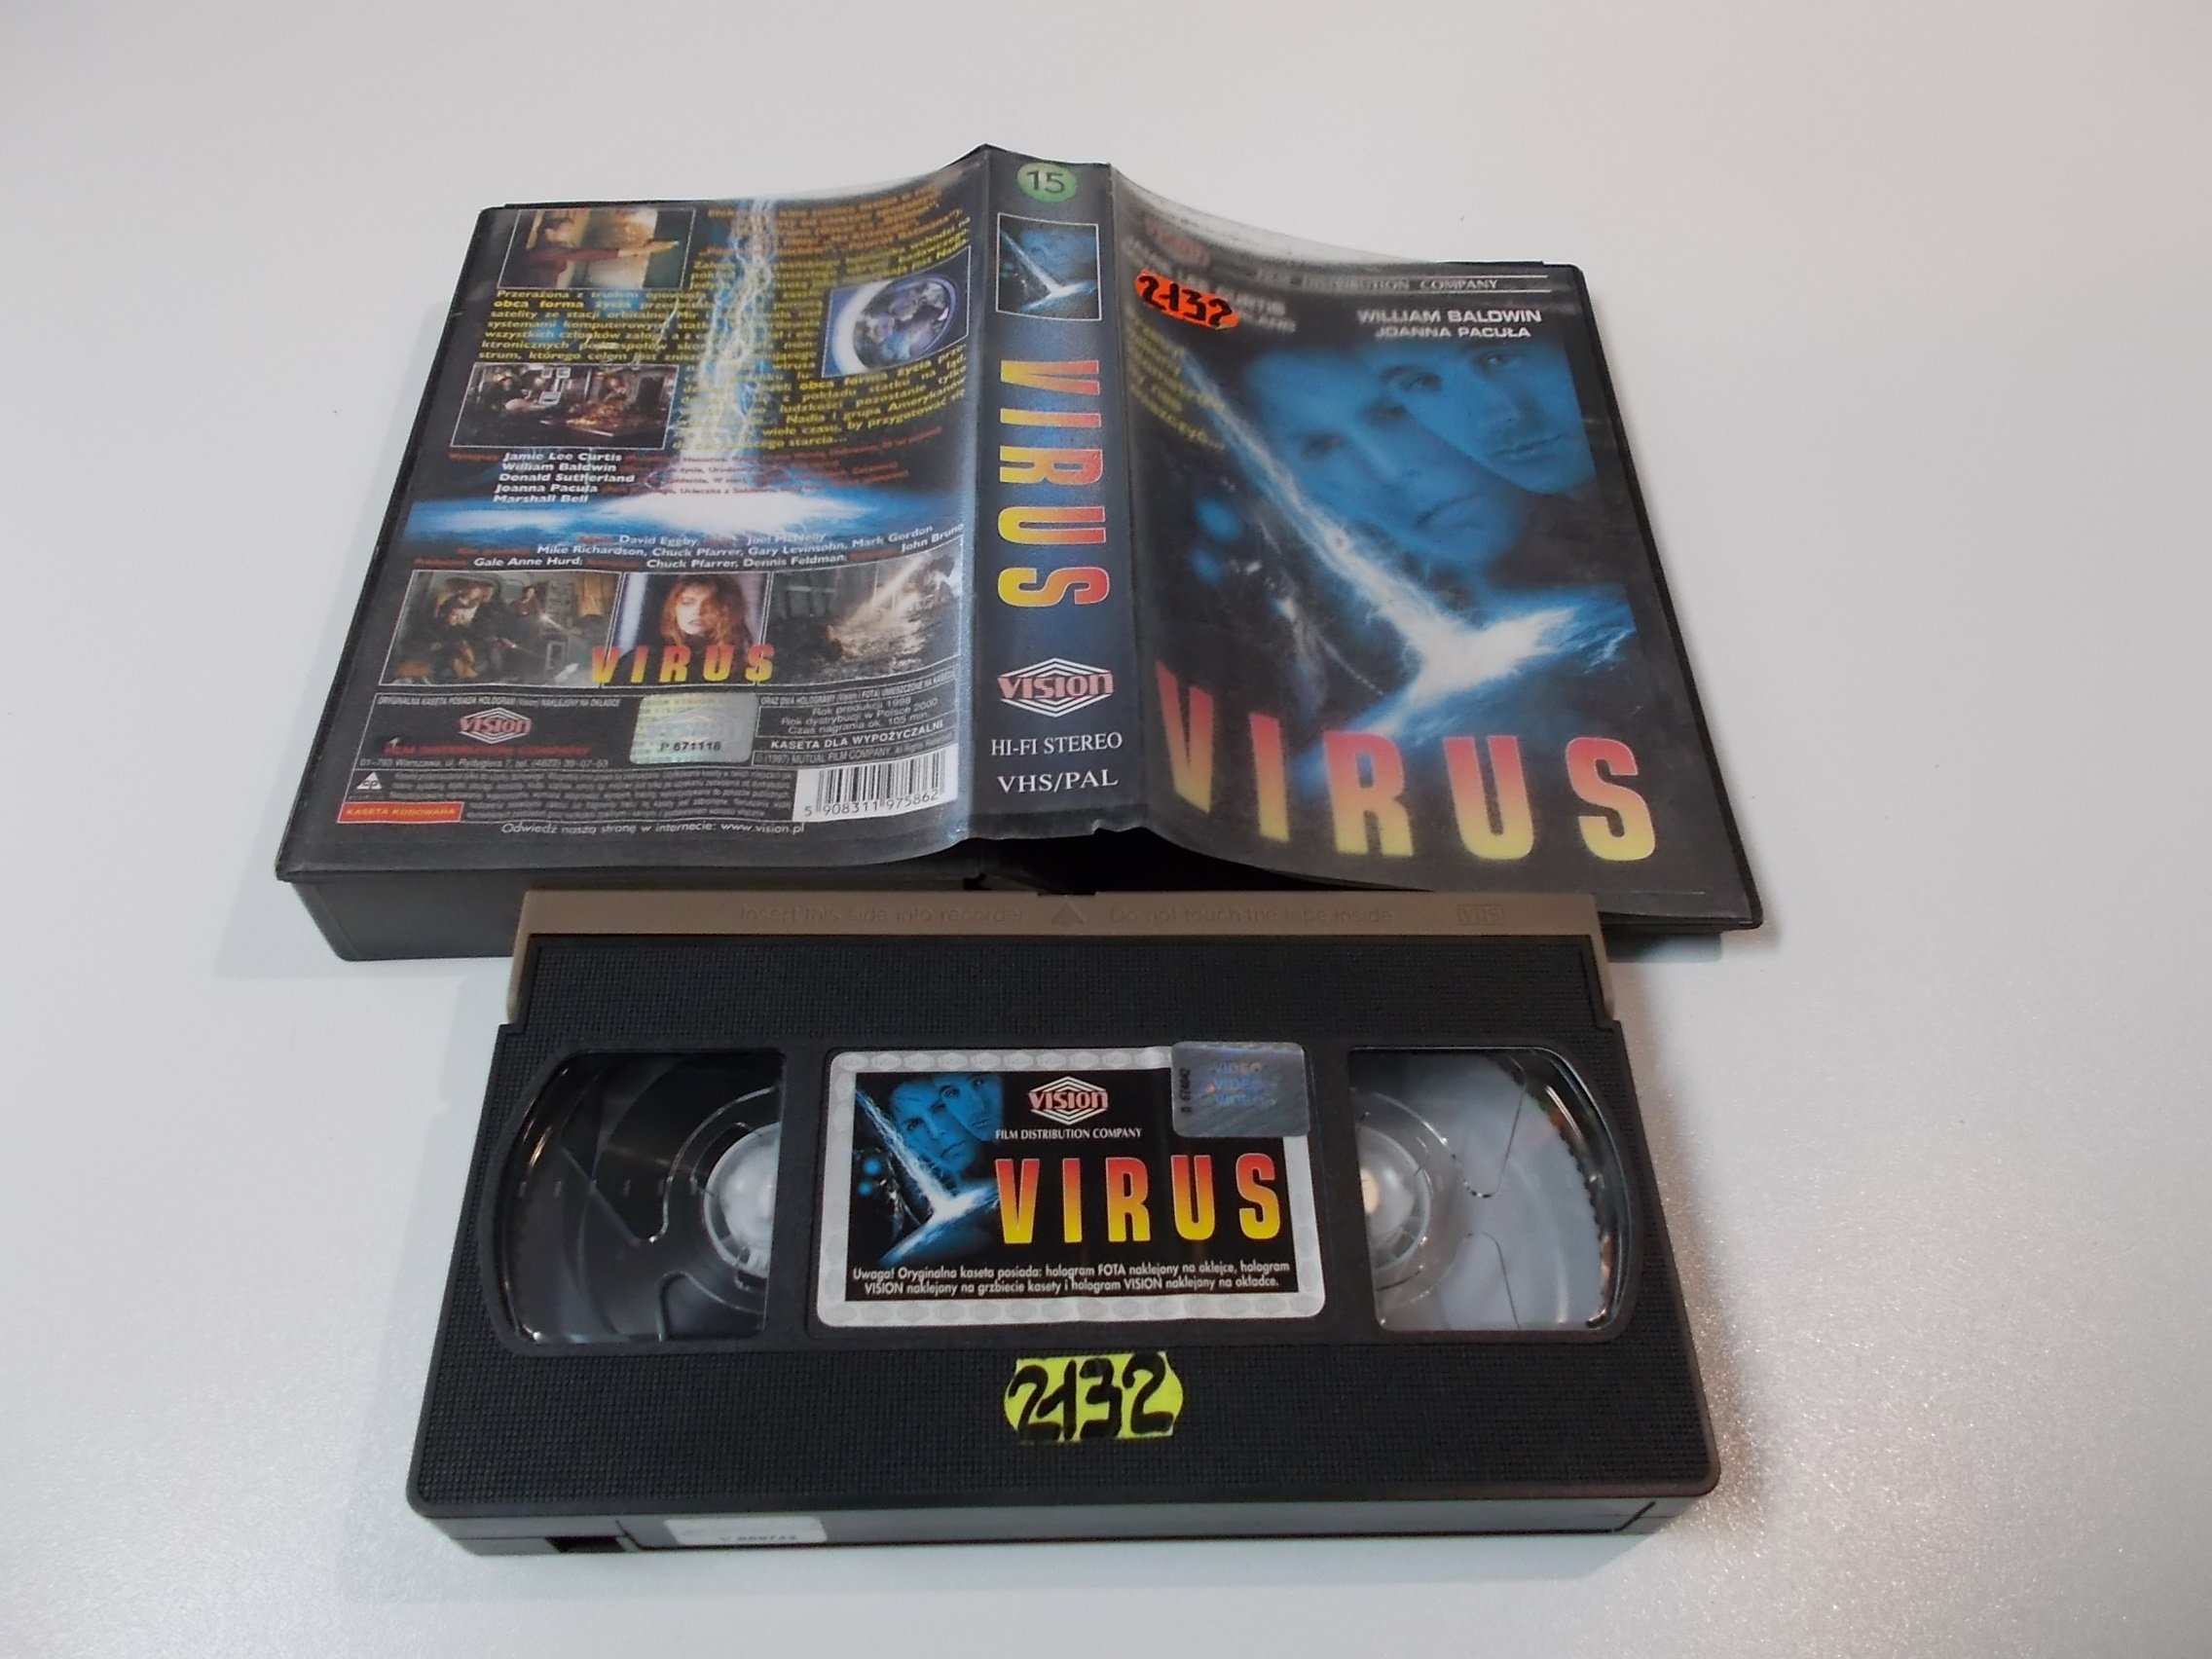 VIRUS - VHS Kaseta Video - Opole 1589